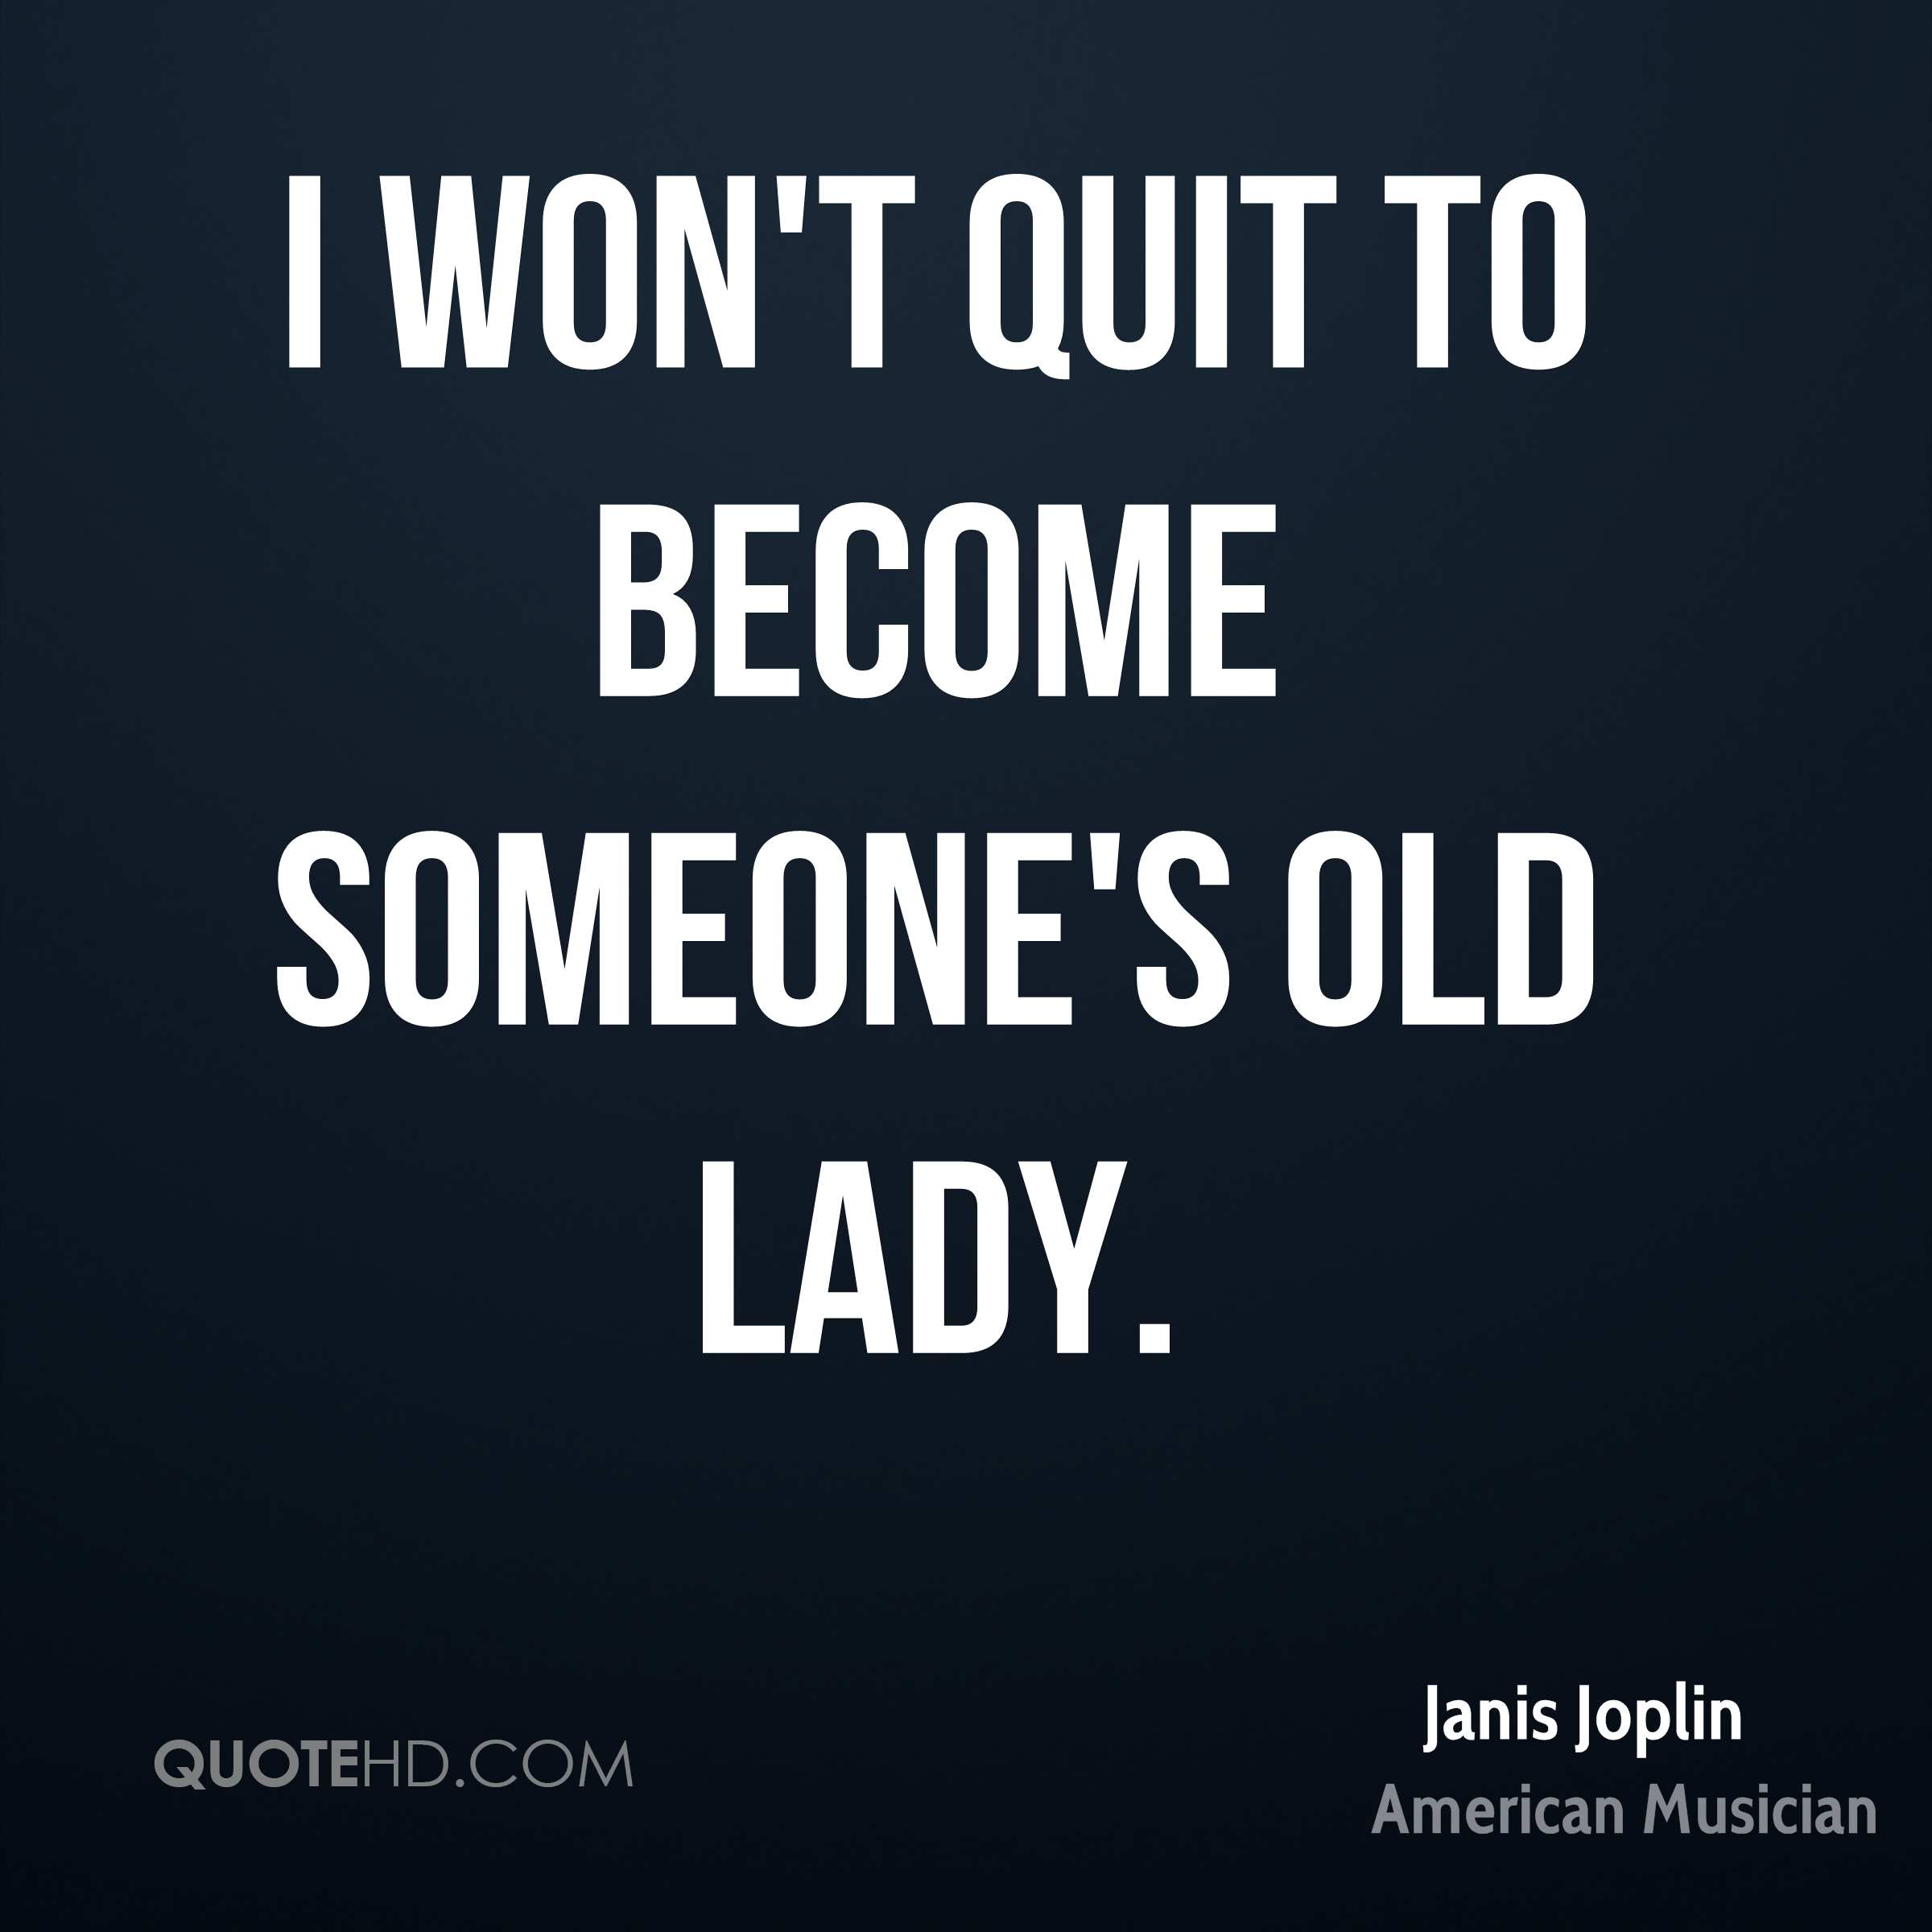 I won't quit to become someone's old lady.